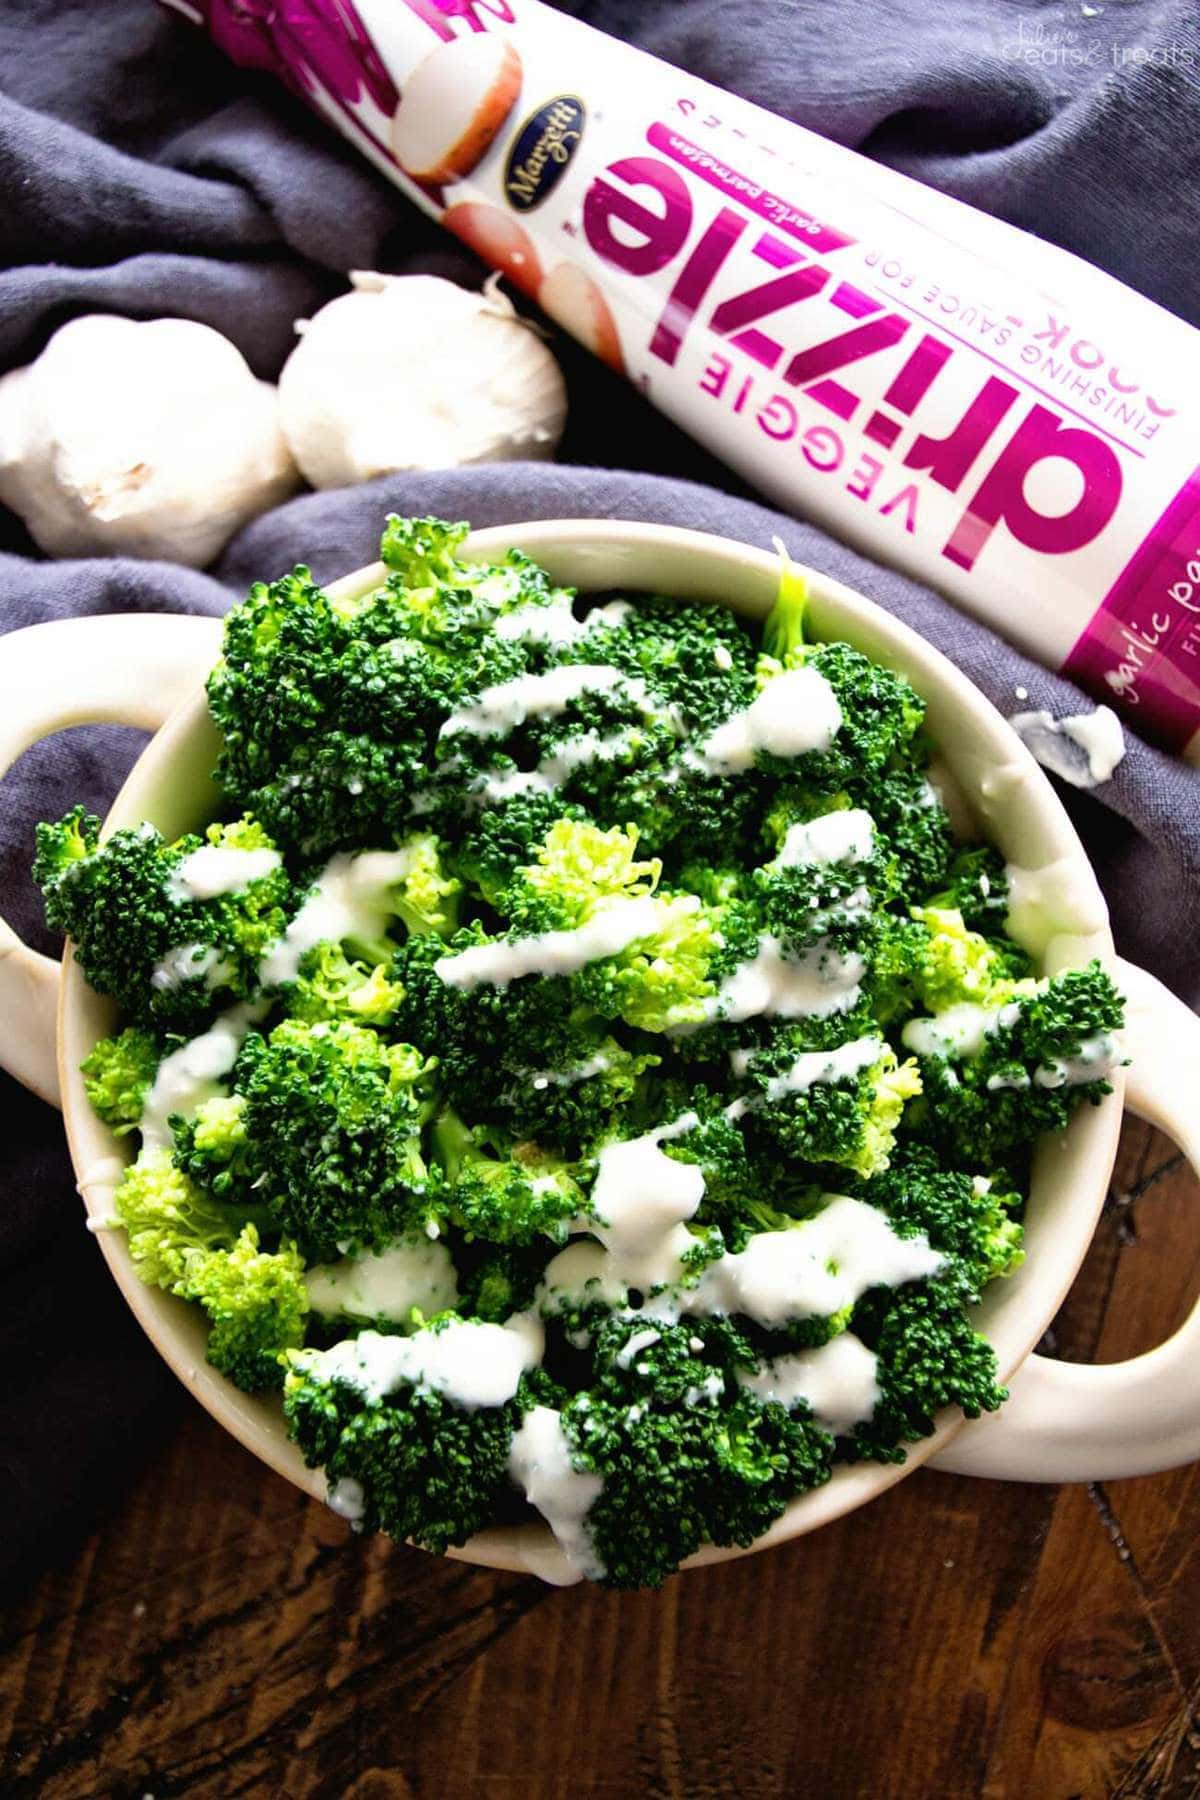 Garlic Parmesan Broccoli Recipe ~ Fresh, Steamed Broccoli Made in the Microwave and finished with Garlic Parmesan Marzetti® Veggie Drizzle™! The Perfect Quick & Easy Weeknight Side Dish that's Ready in Minutes!